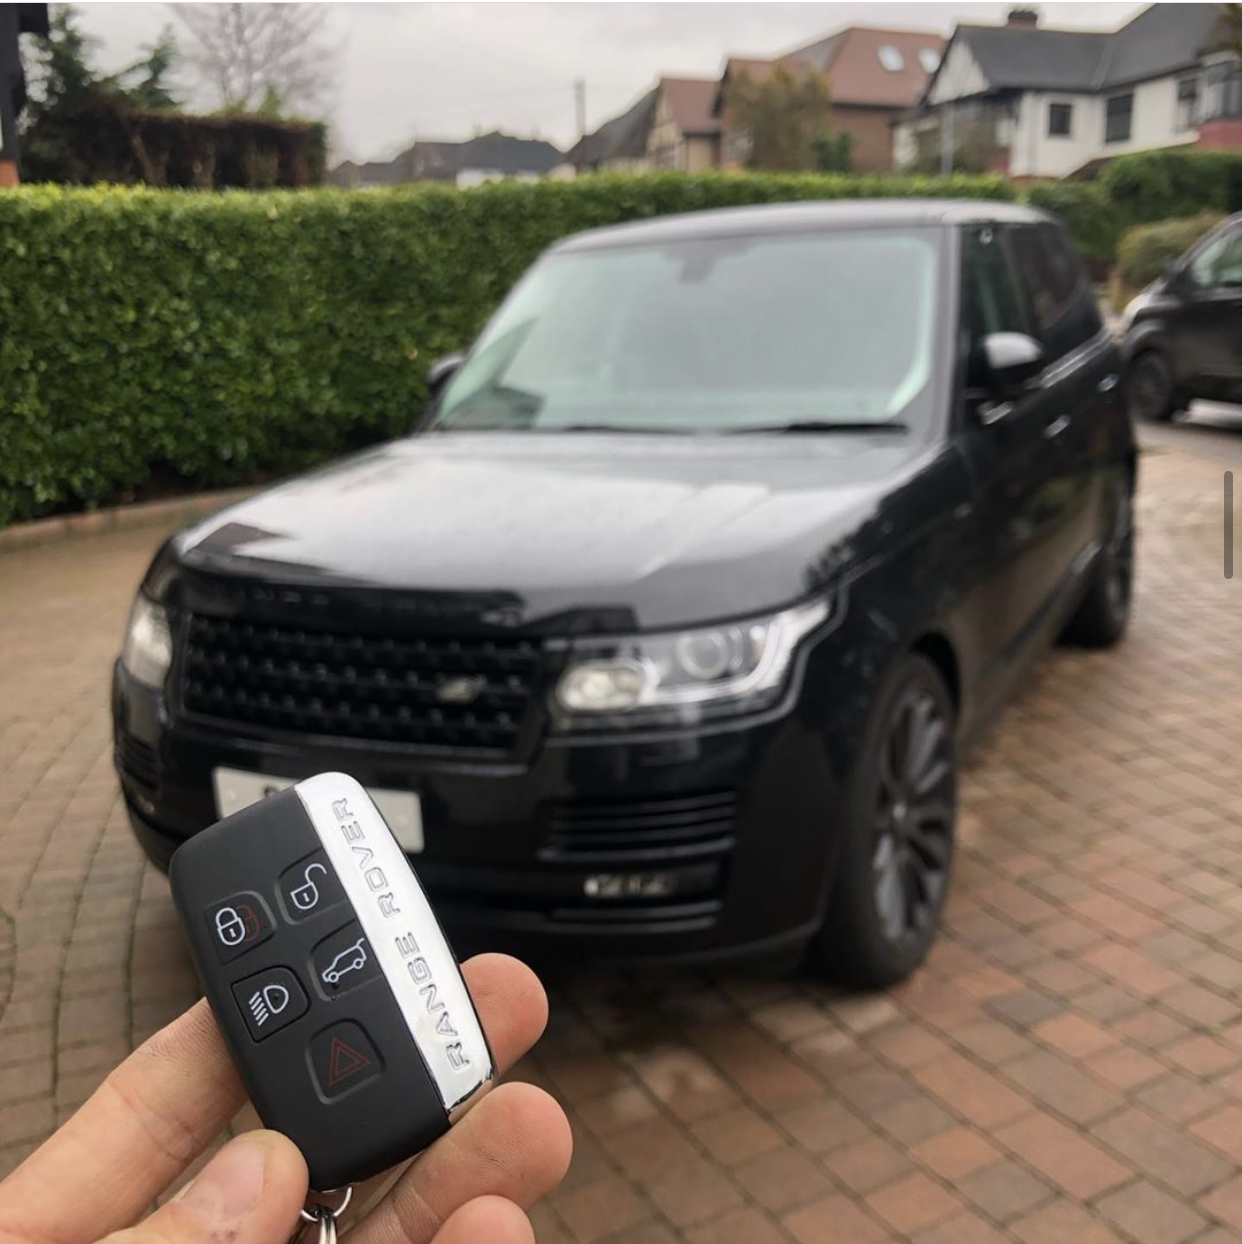 Range Rover Evoque Key Replacement